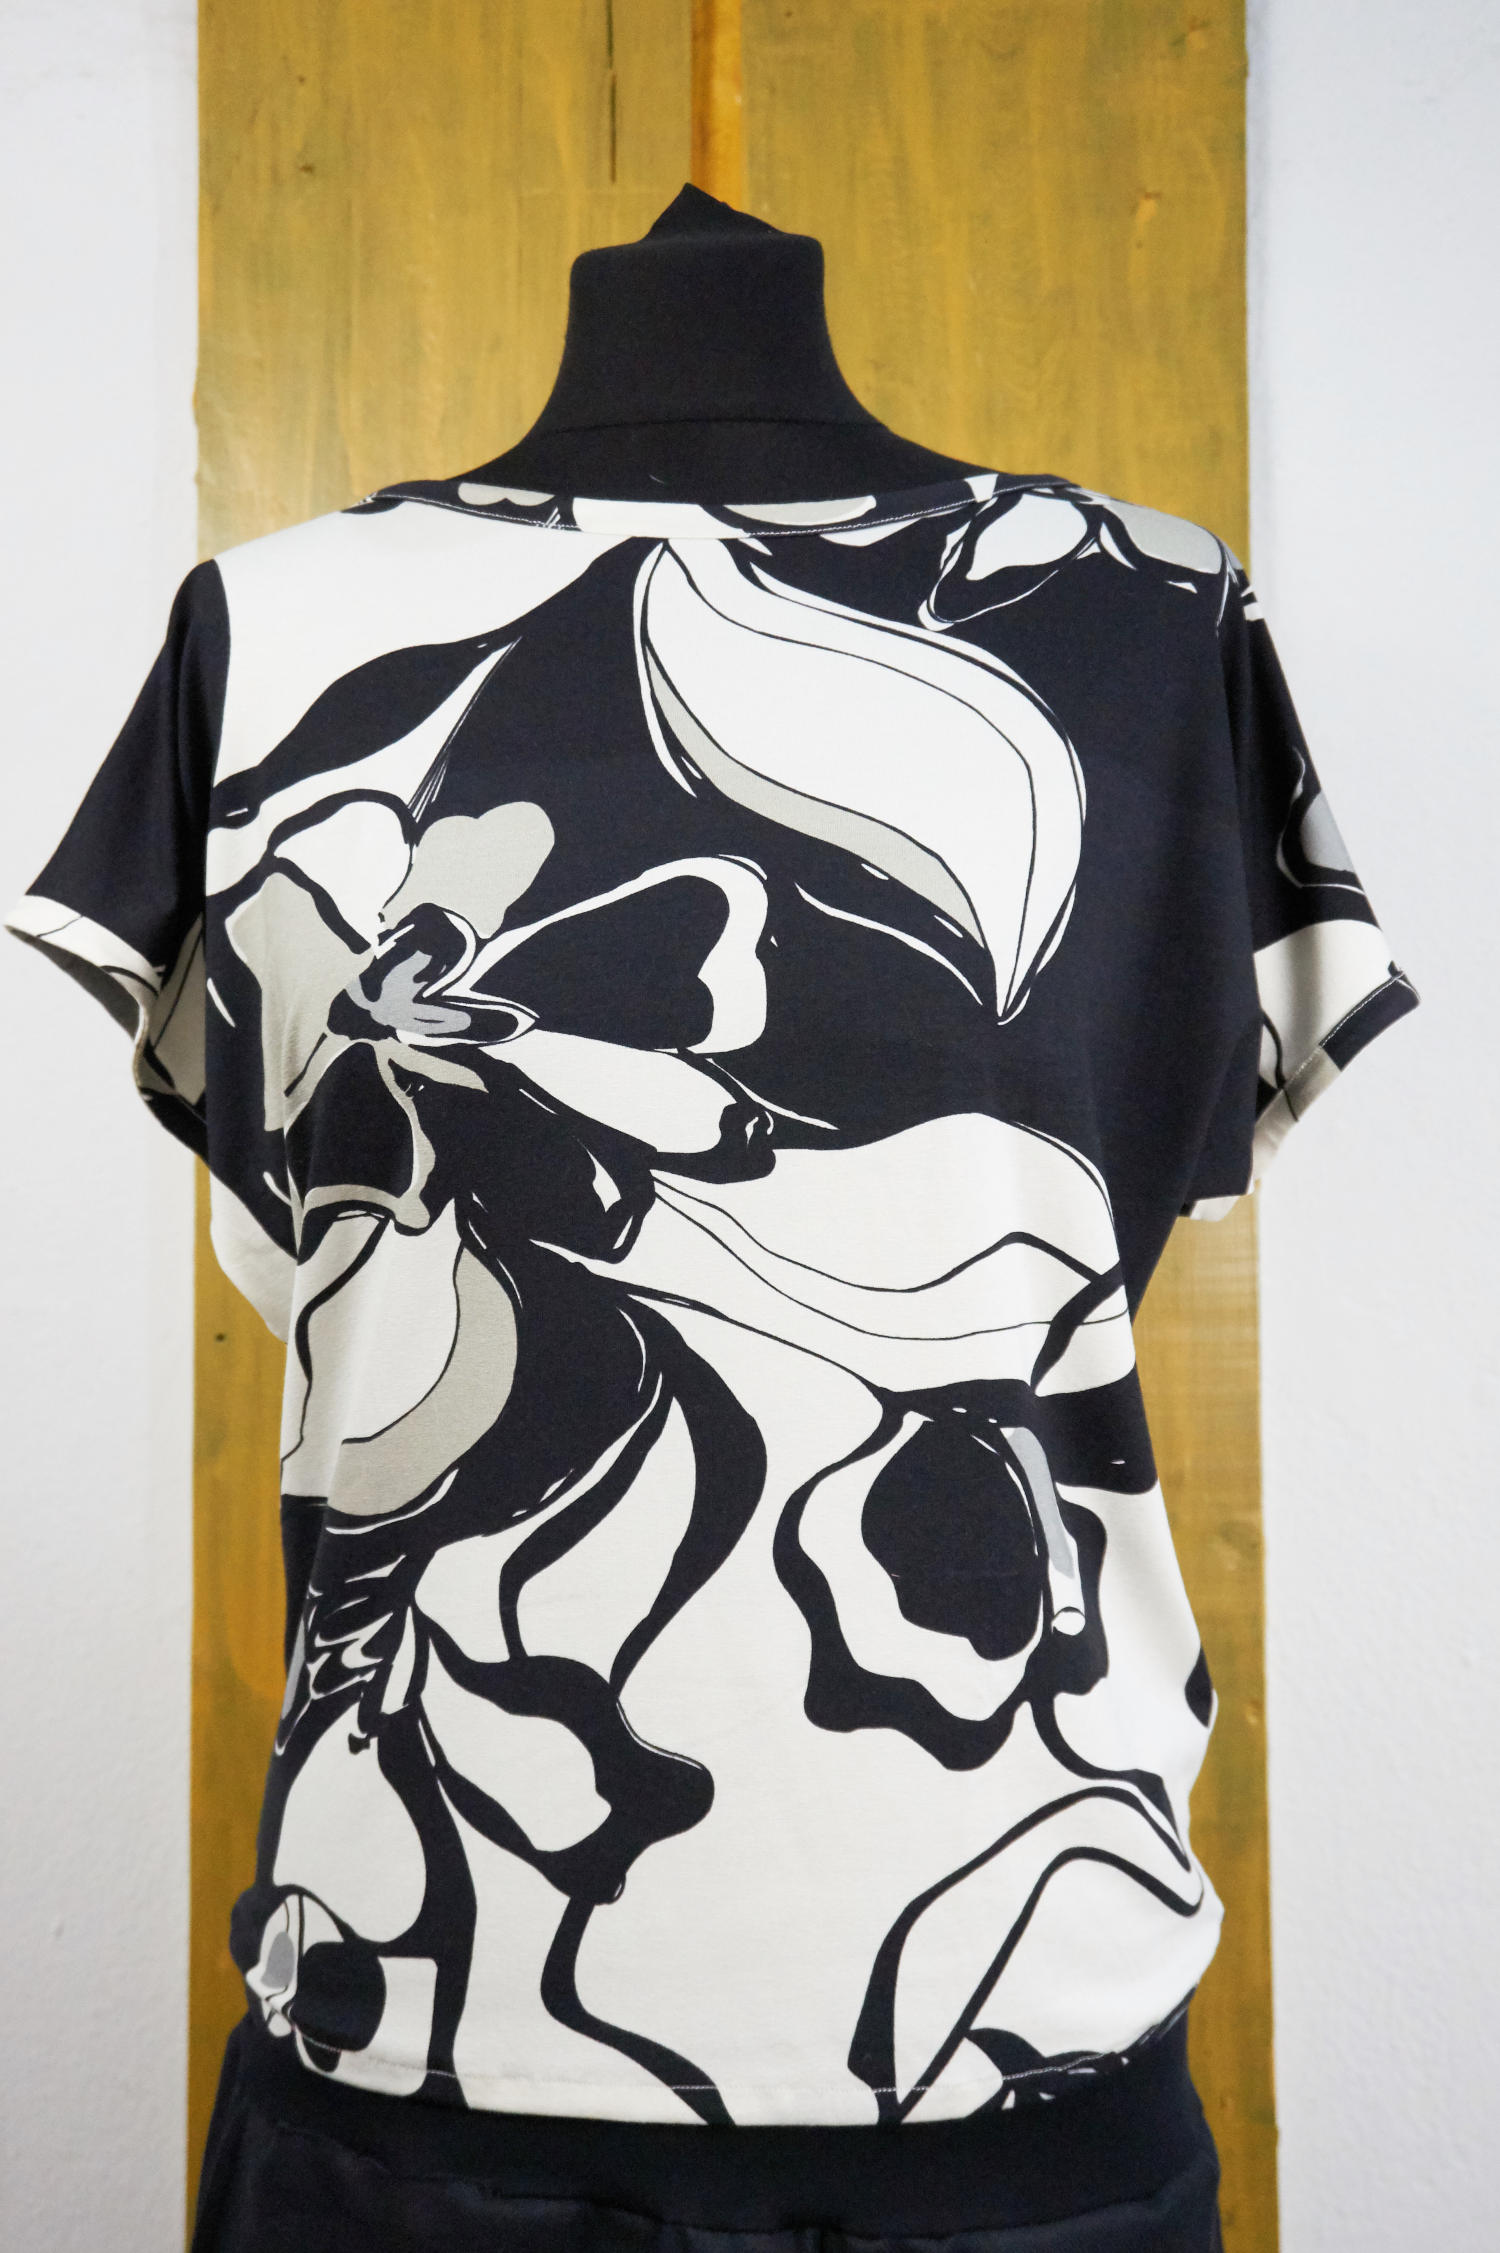 t-shirt with batwing sleeves